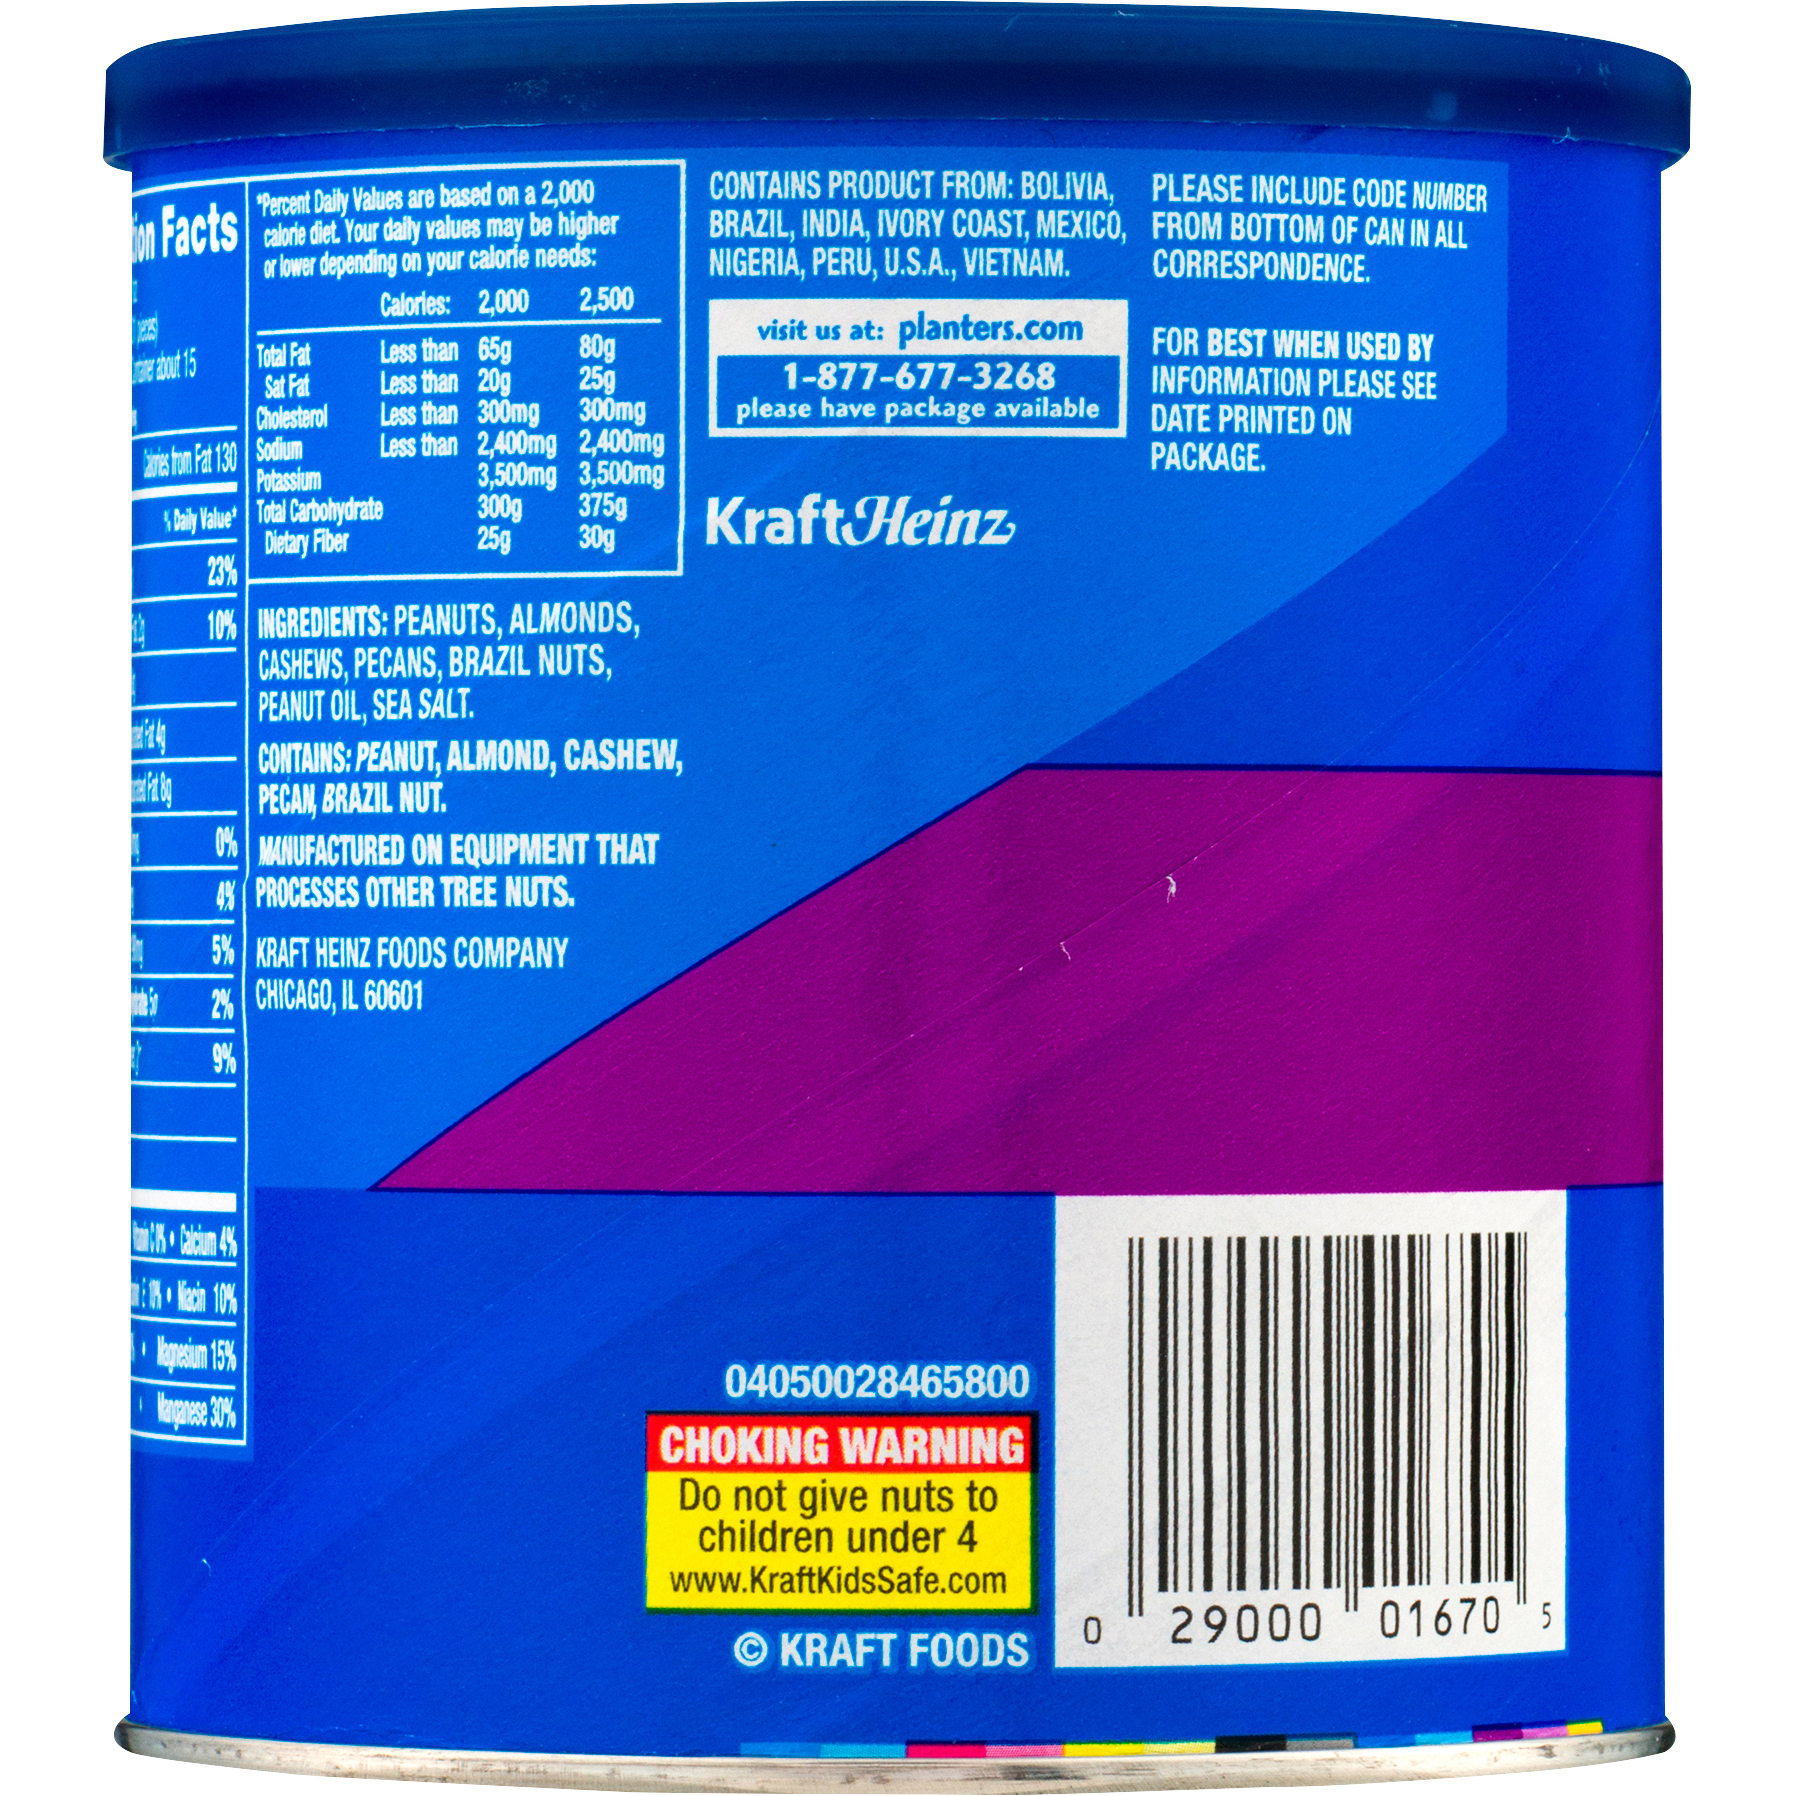 PLANTERS Mixed Nuts 15 oz Can | Planters on capri sun nutritional information, peanut m & m's nutritional information, coca-cola nutritional information,